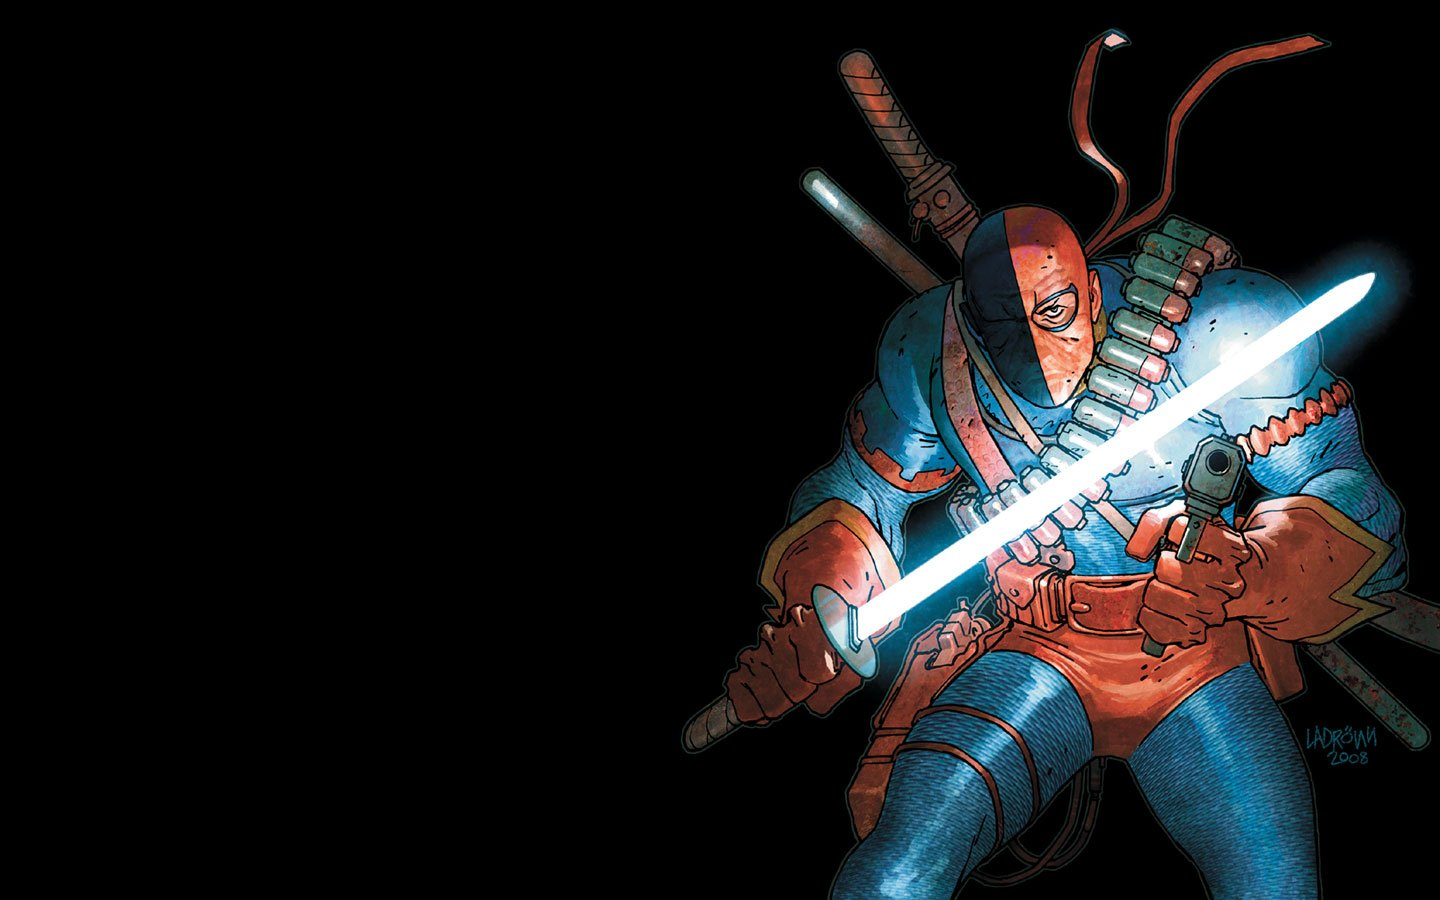 DC Comics Deathstroke black background wallpaper 1440x900 246569 1440x900